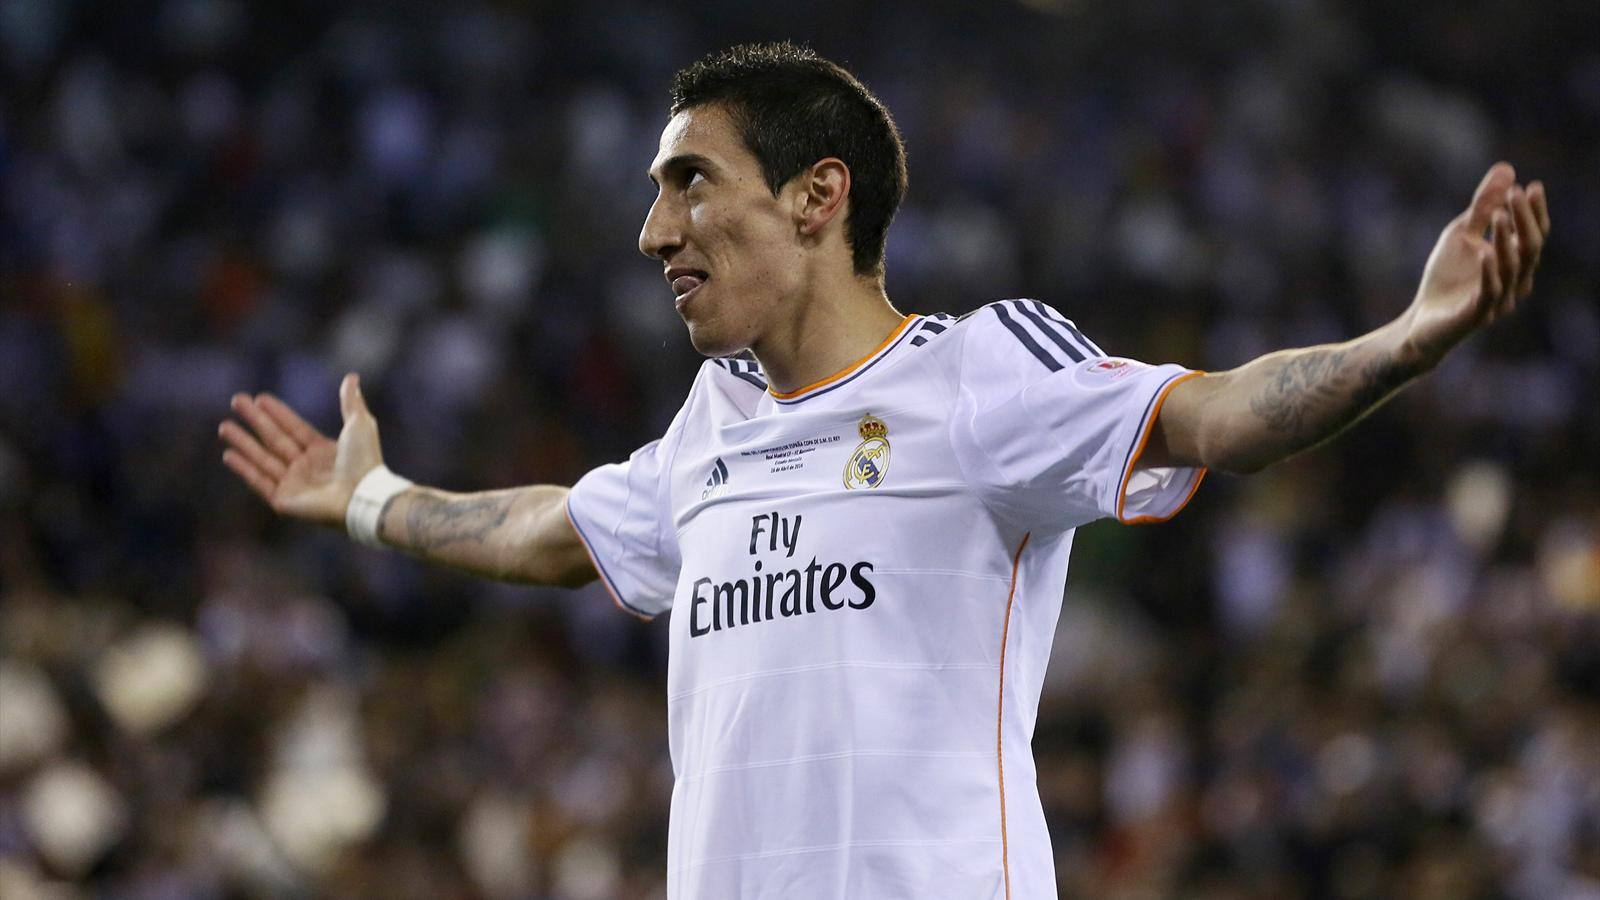 Angel Di Maria - milieu de terrain du Real Madrid